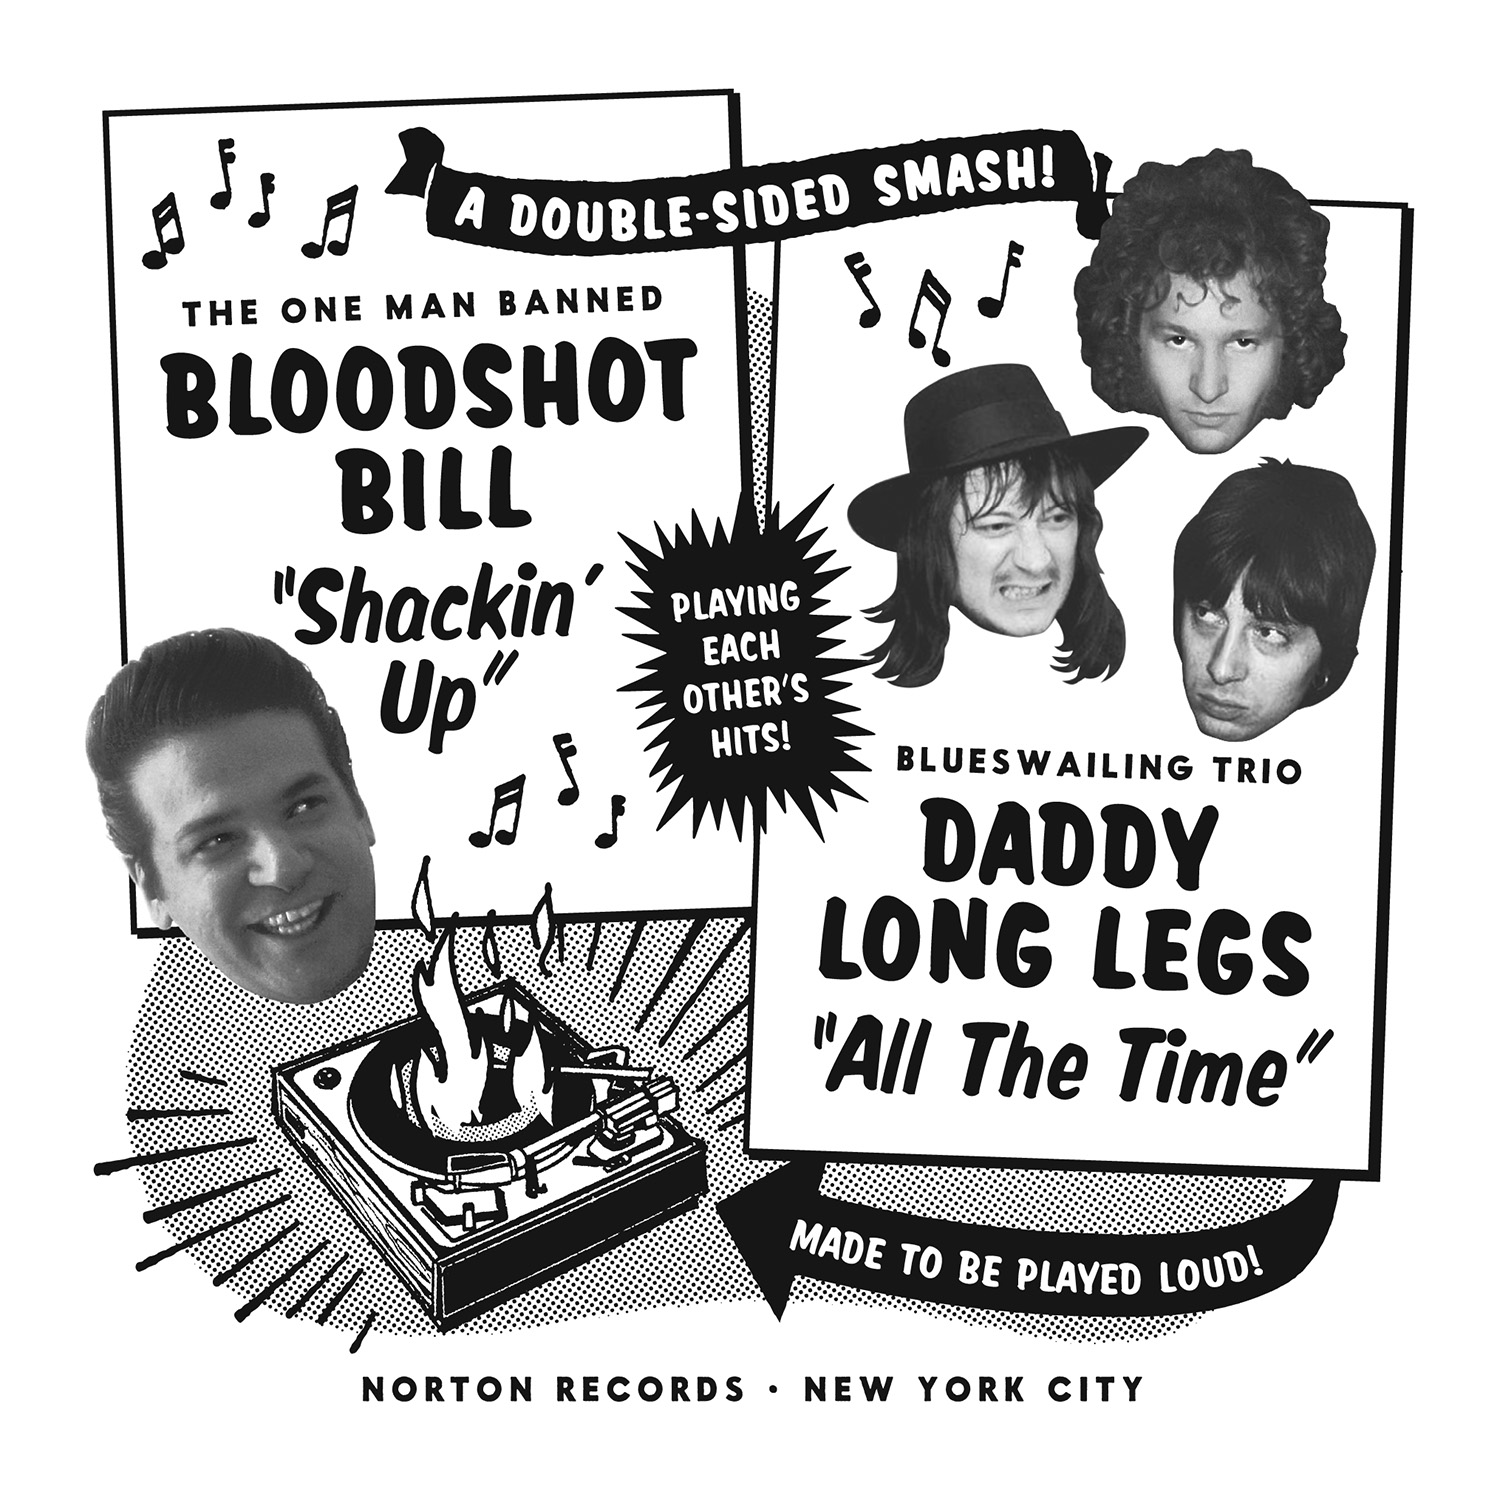 Bloodshot Bill/Daddy Long Legs 45 sleeve